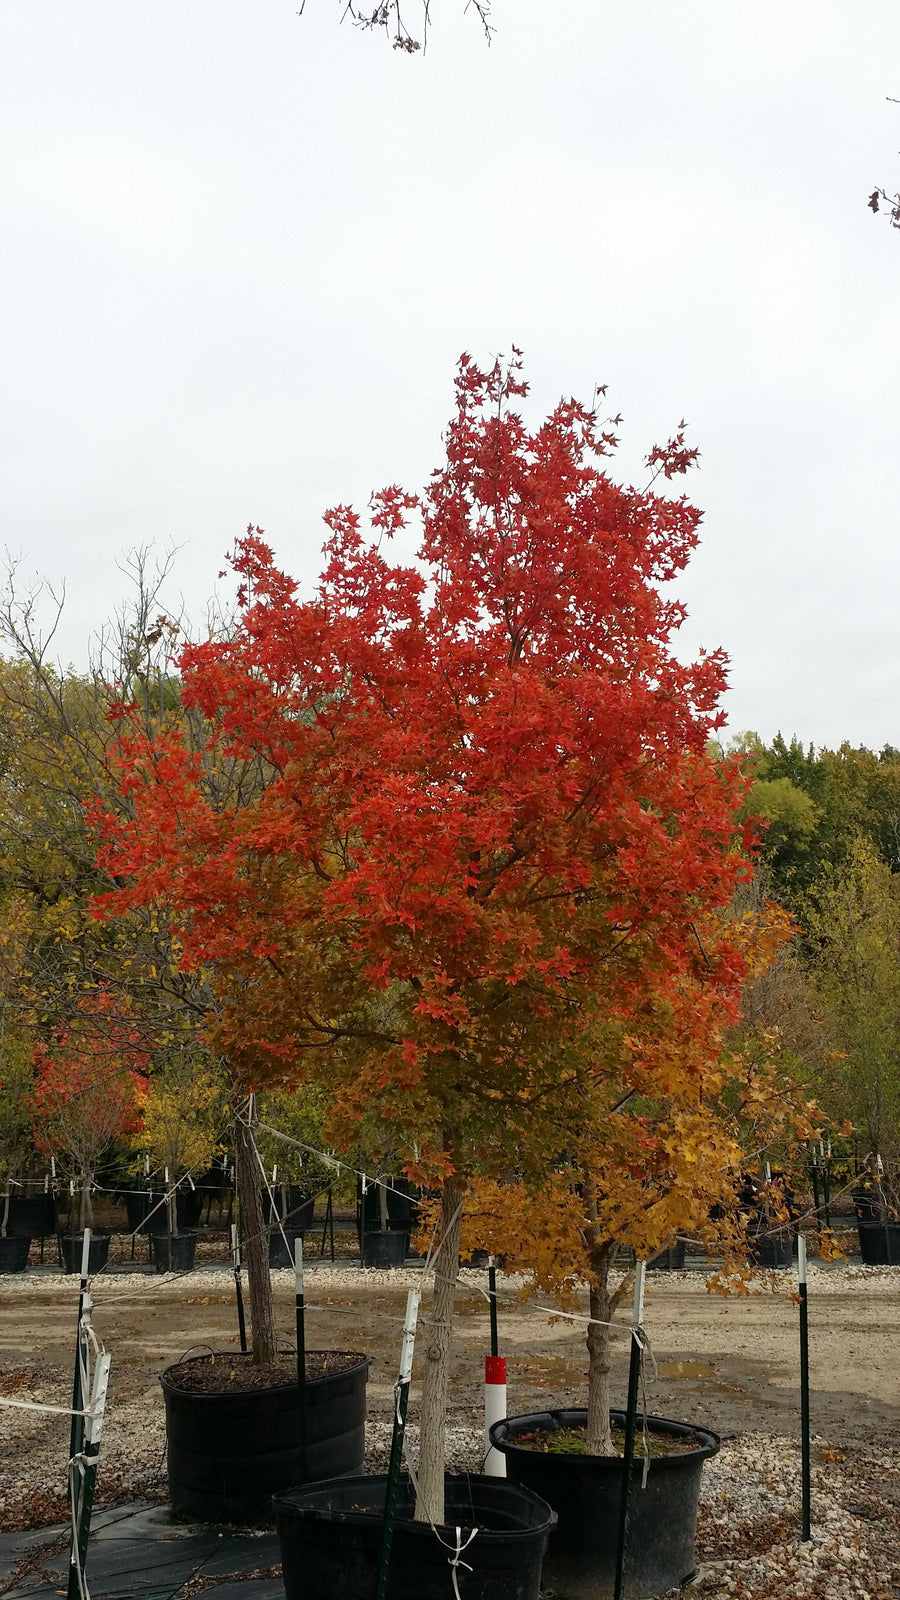 Fire Dragon Shantung Maple - Acer Truncatum 'Fire Dragon'